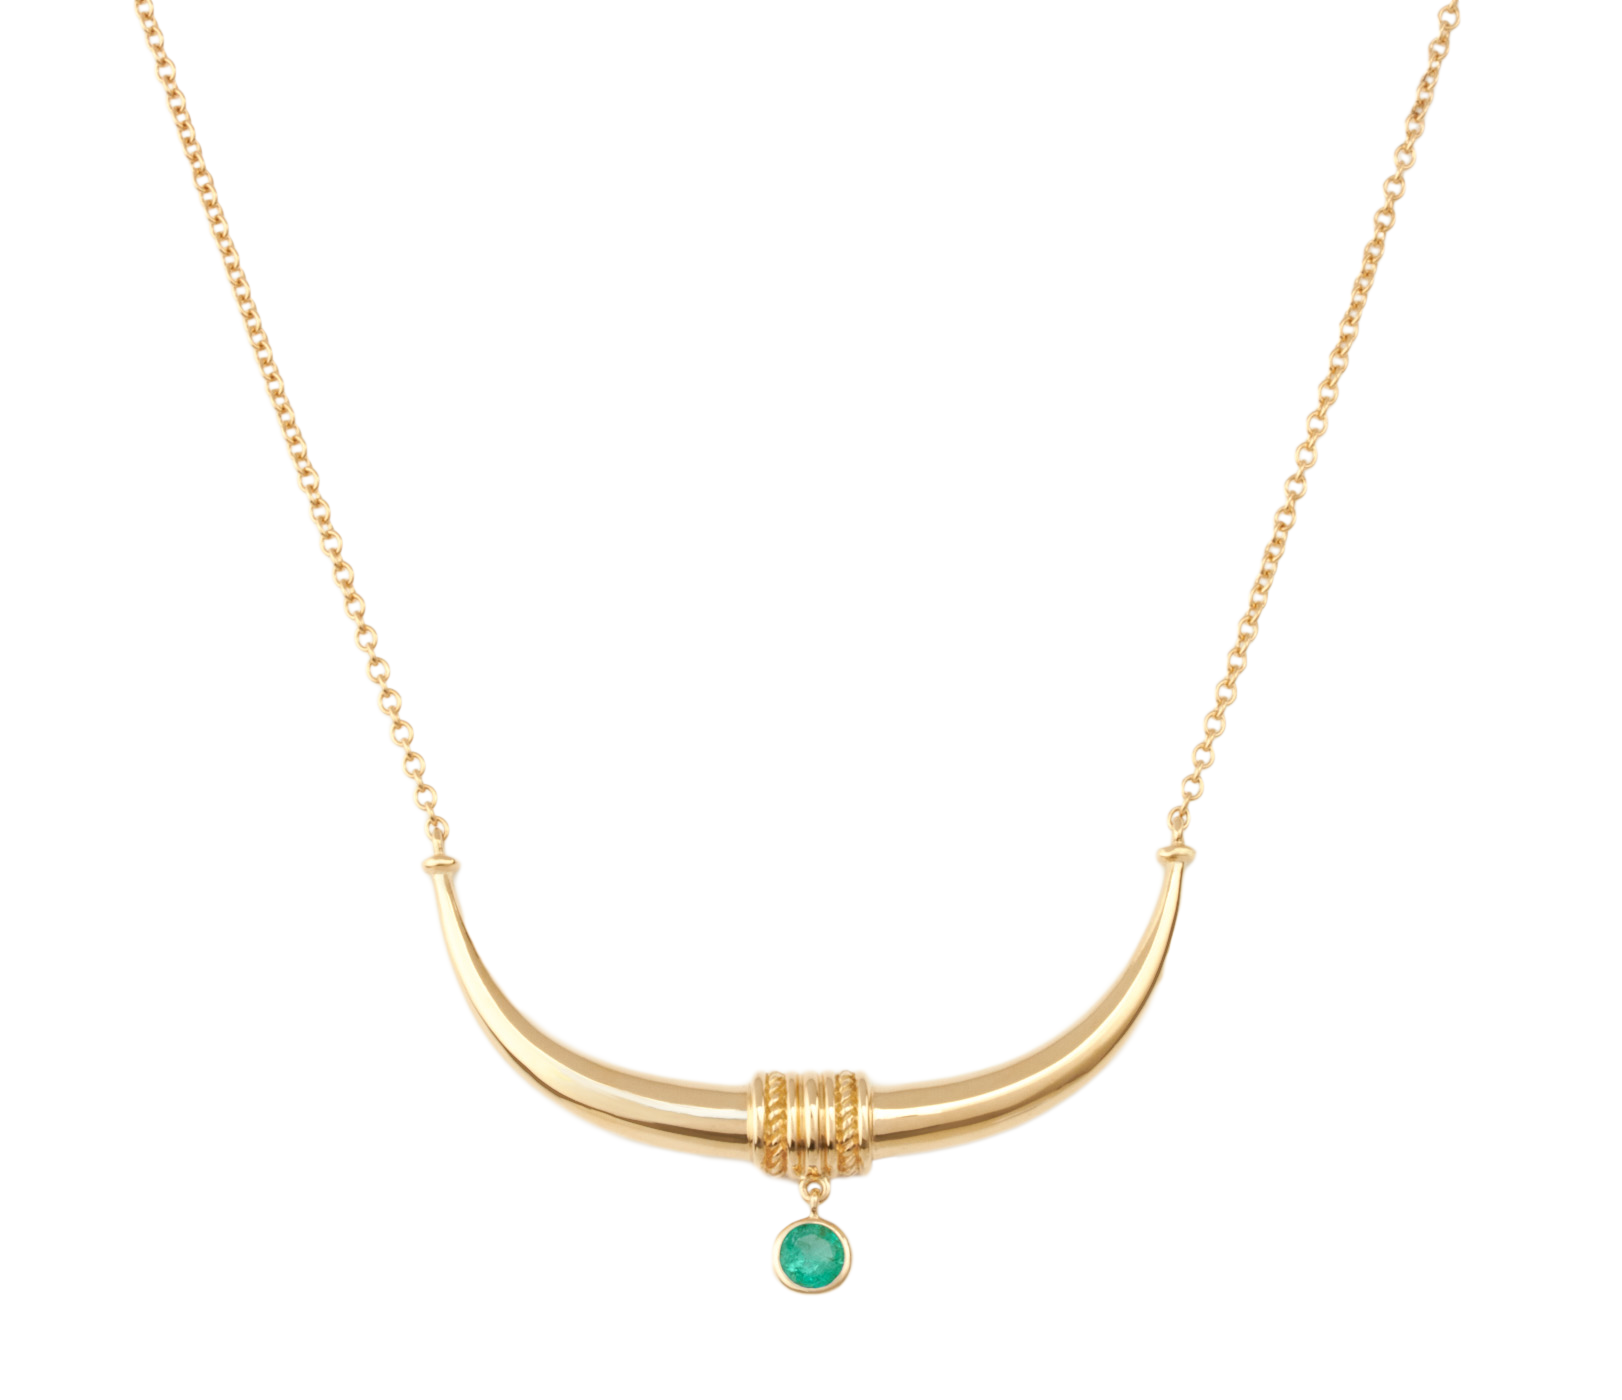 Toka-Leya Necklace - Emerald